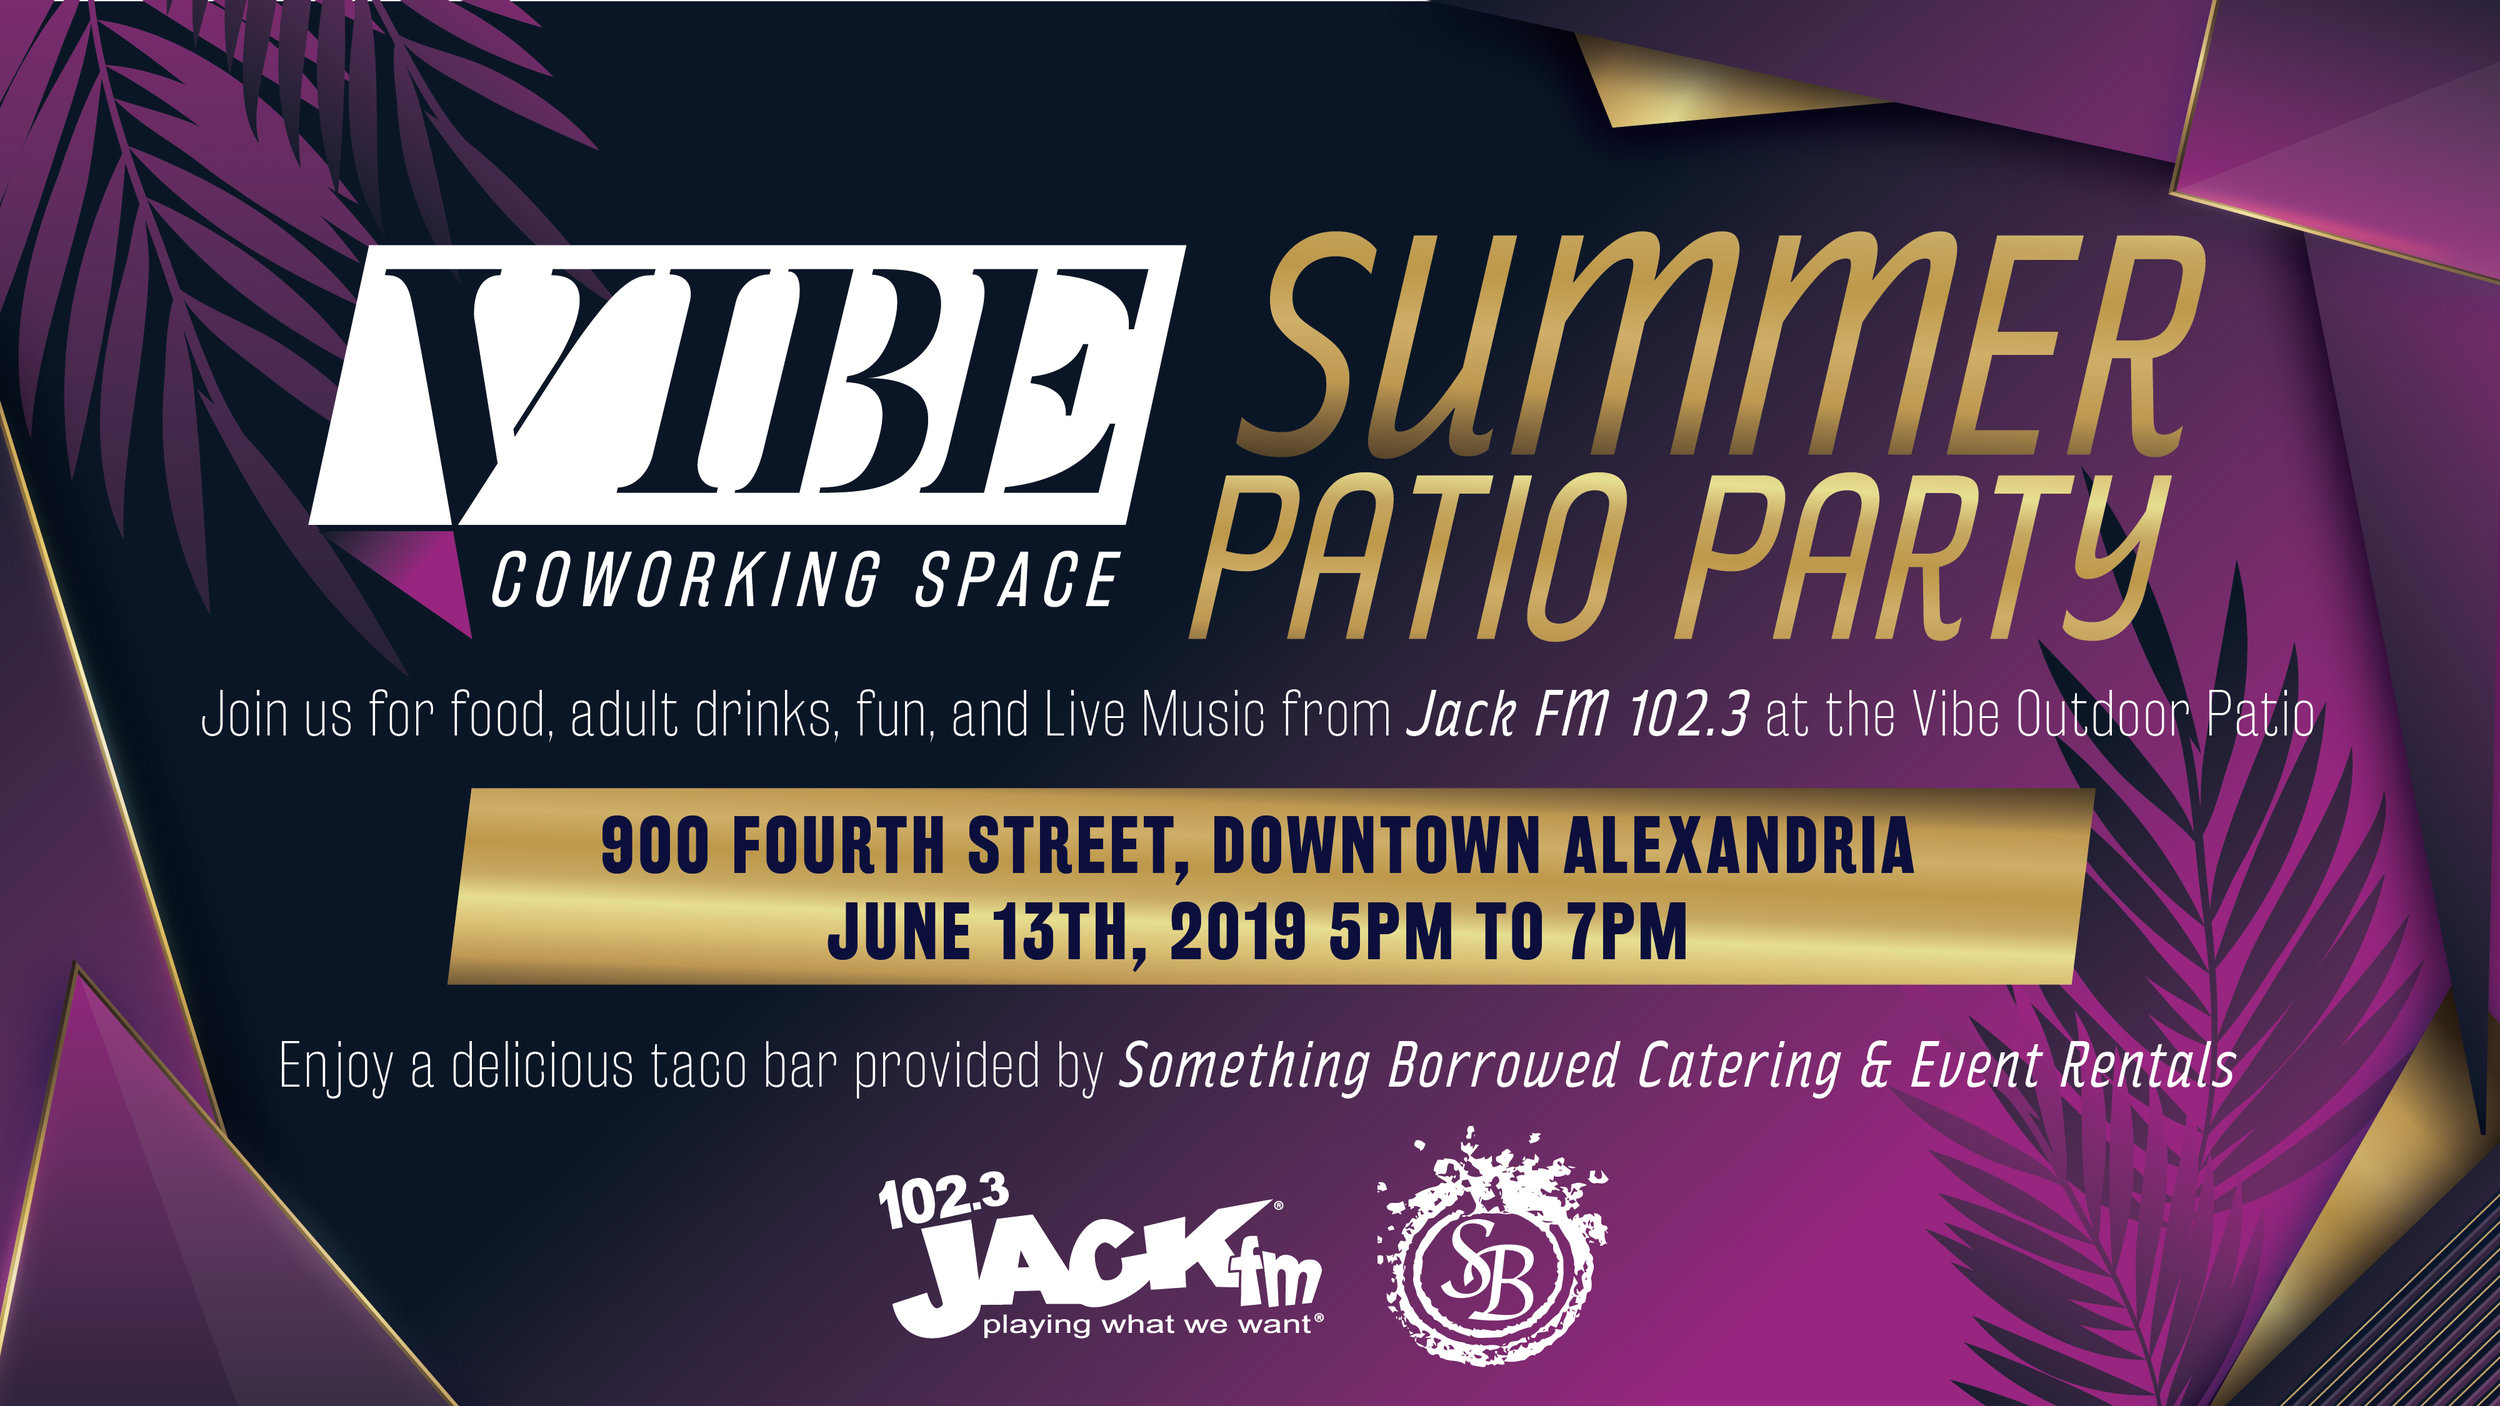 VIBE-Summer_Party-Event-Cover-1-01.jpg